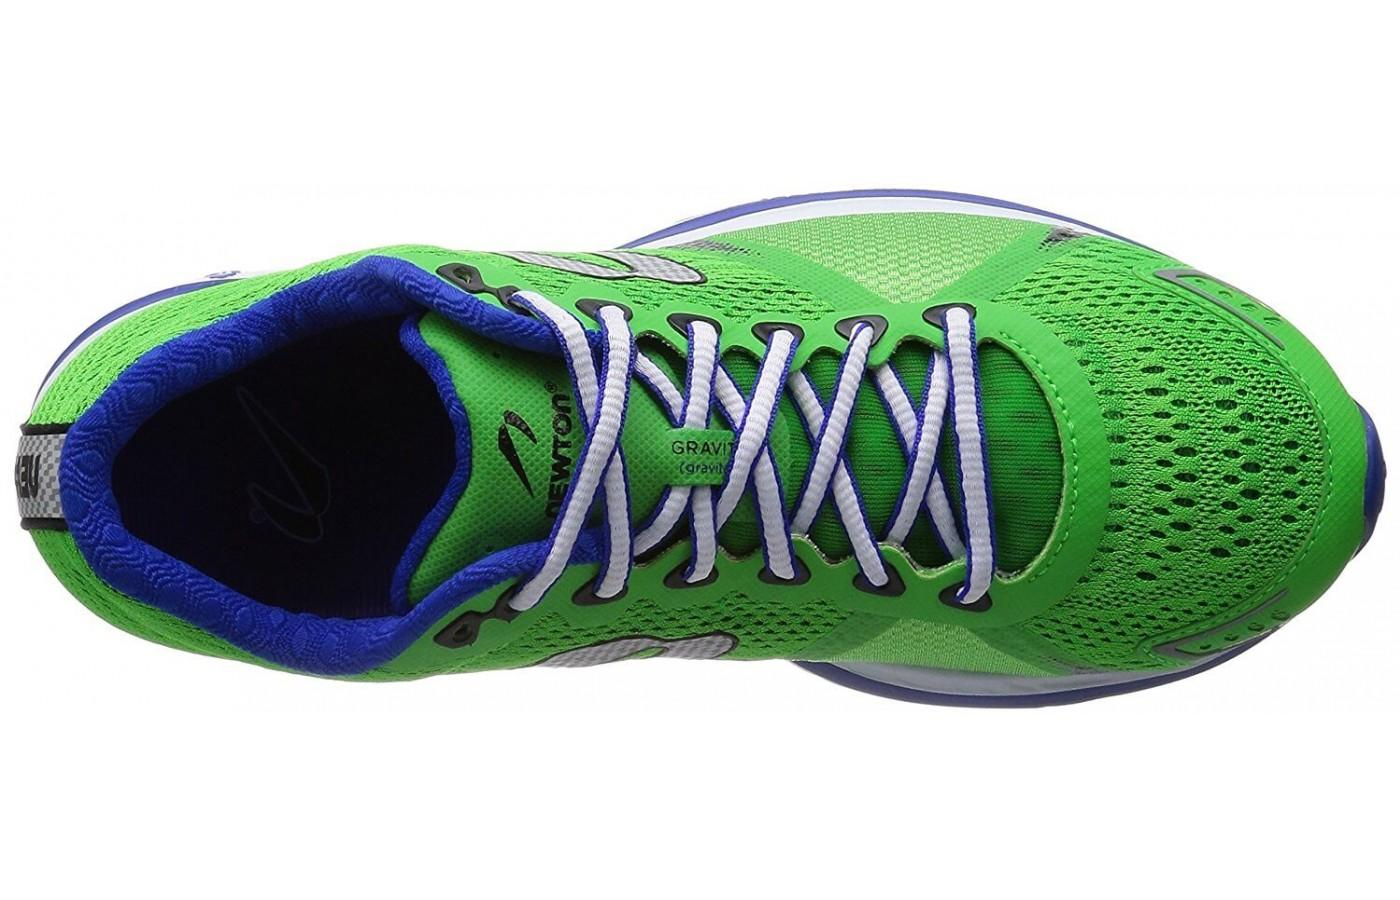 The traditional lacing system keeps the foot secure